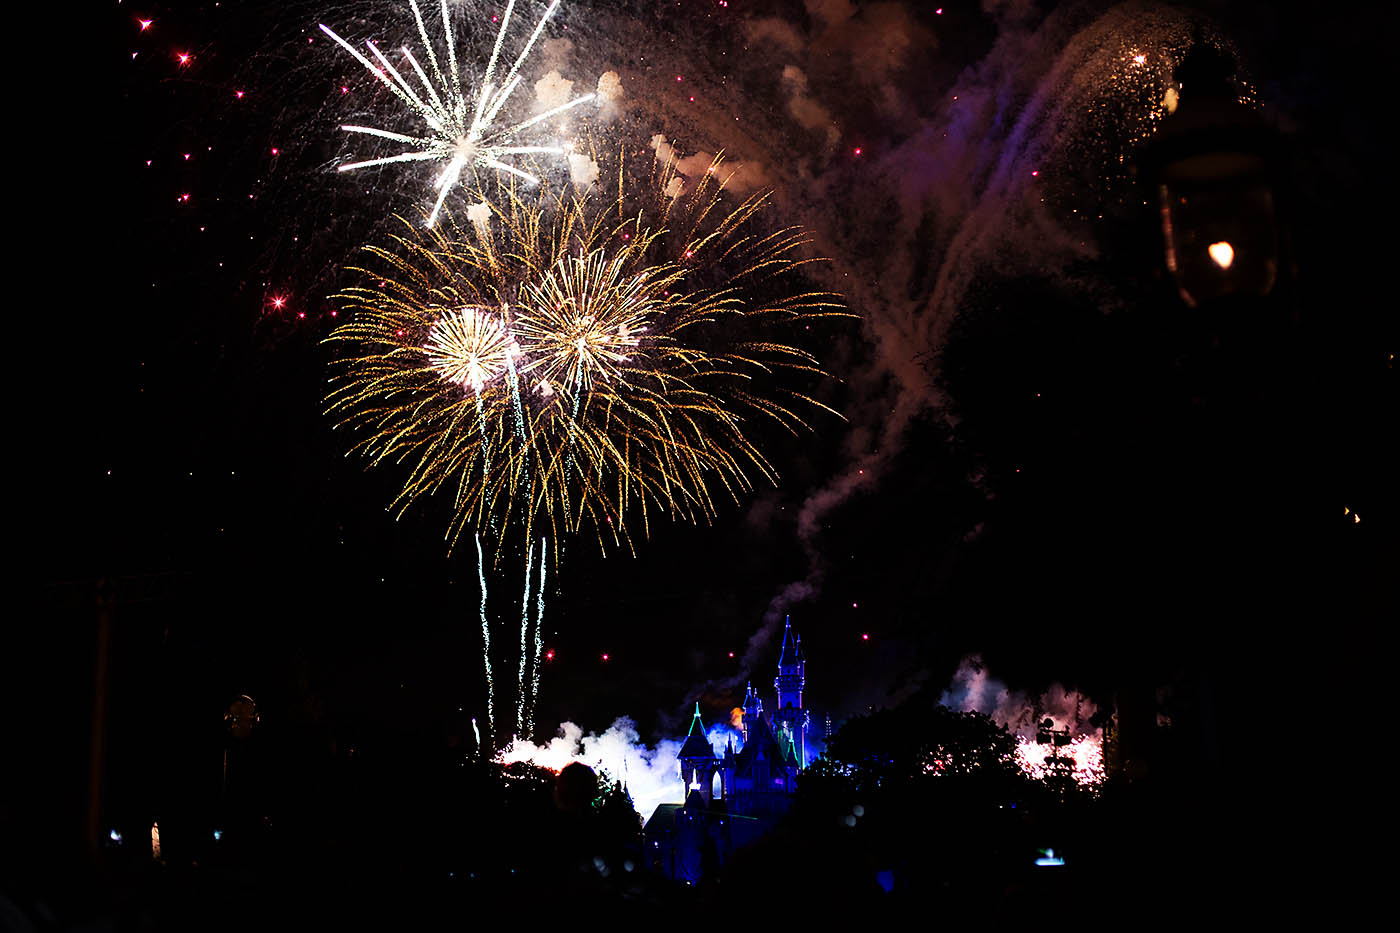 6 great spots to view 'Disneyland Forever' the new fireworks spectacular at Disneyland Resort